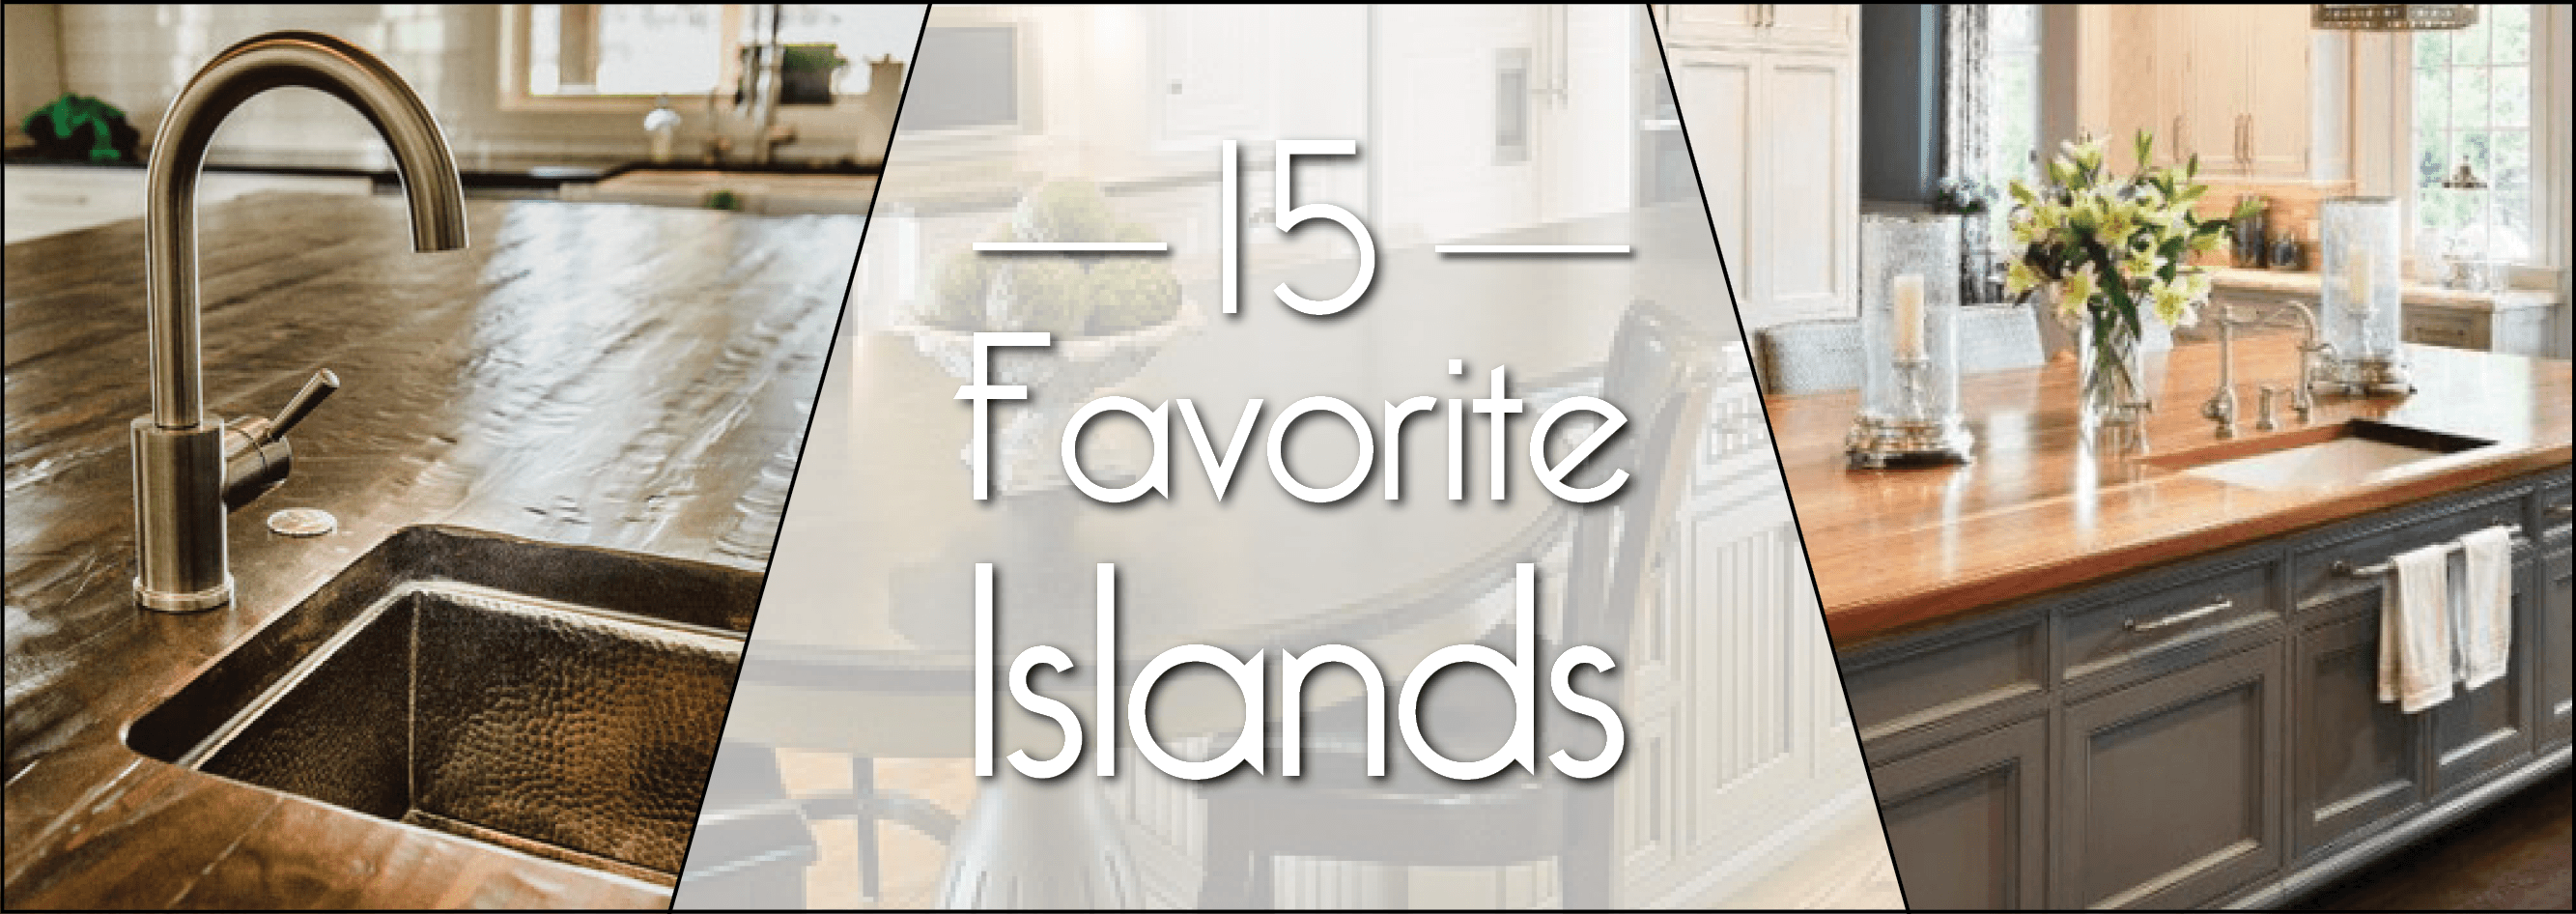 Our Top 15 Favorite Islands